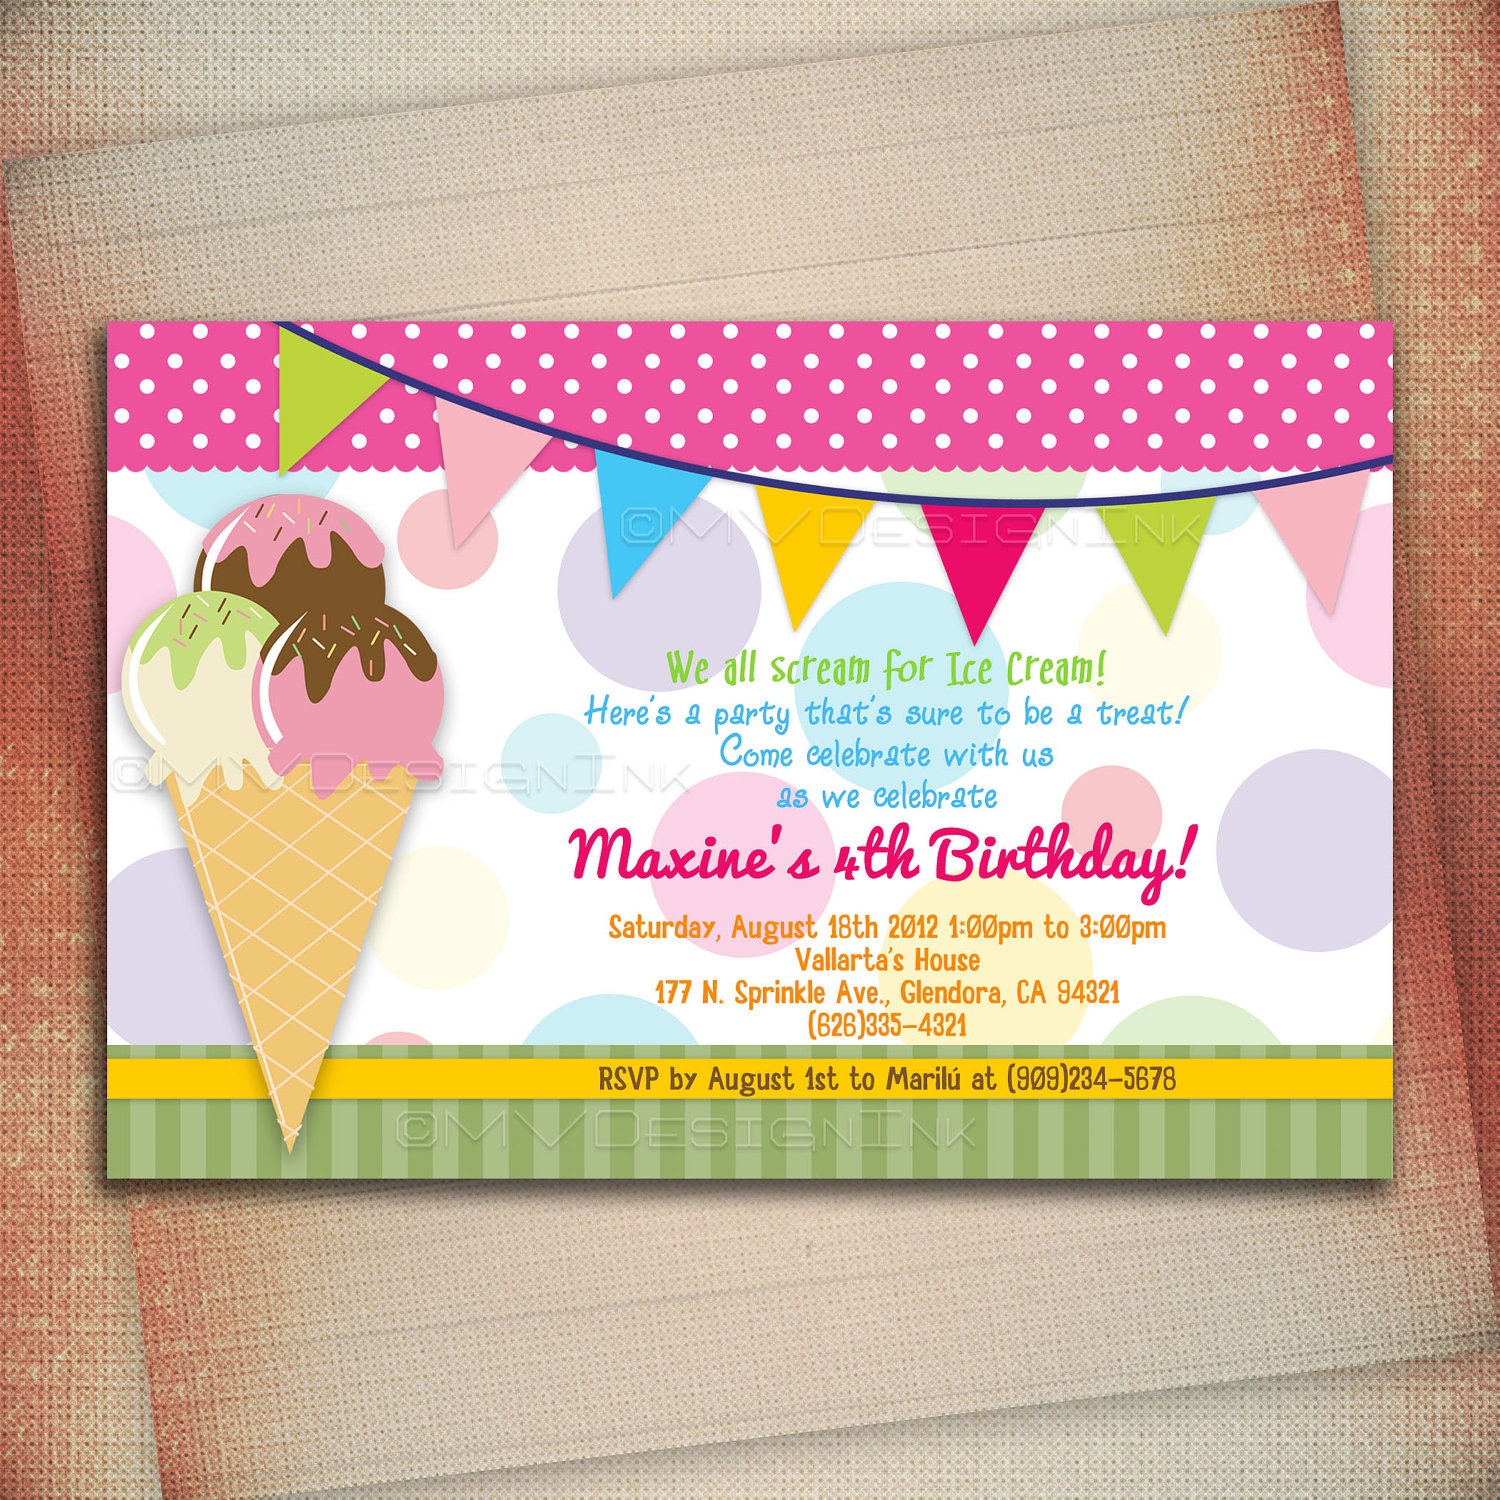 ice cream birthday party invitation wording ; Ice-cream-birthday-party-invitations-is-one-of-the-best-idea-for-you-to-make-your-own-party-invitation-design-18